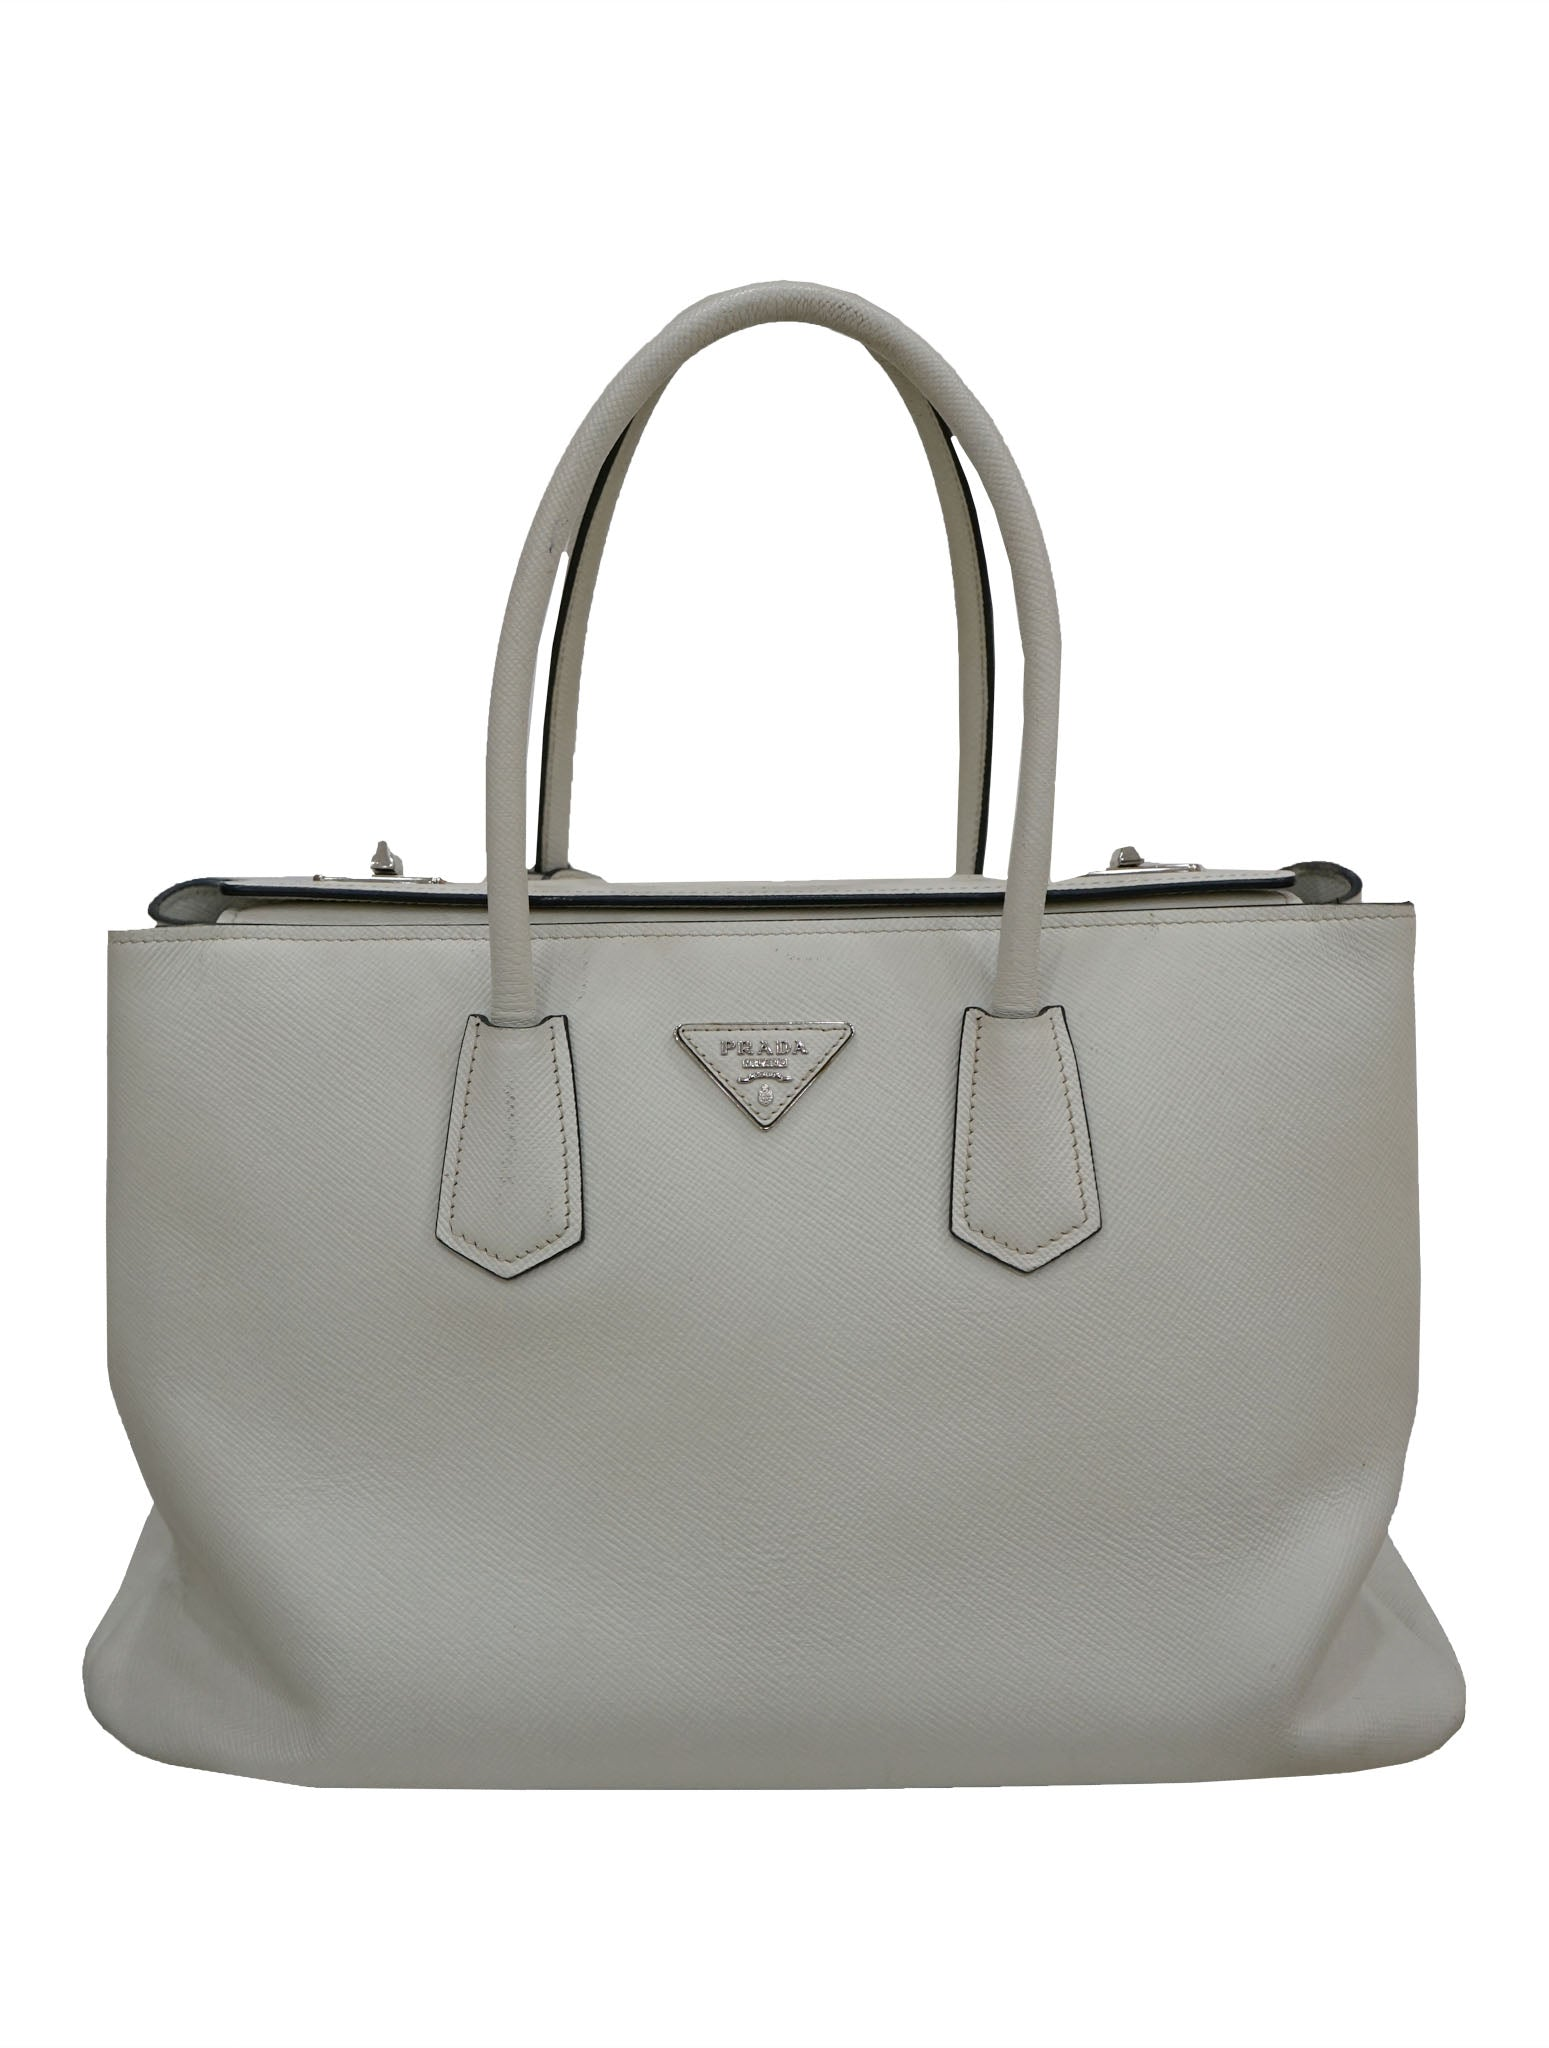 LARGE CITY CALF TURN-LOCK TWIN TOTE BAG